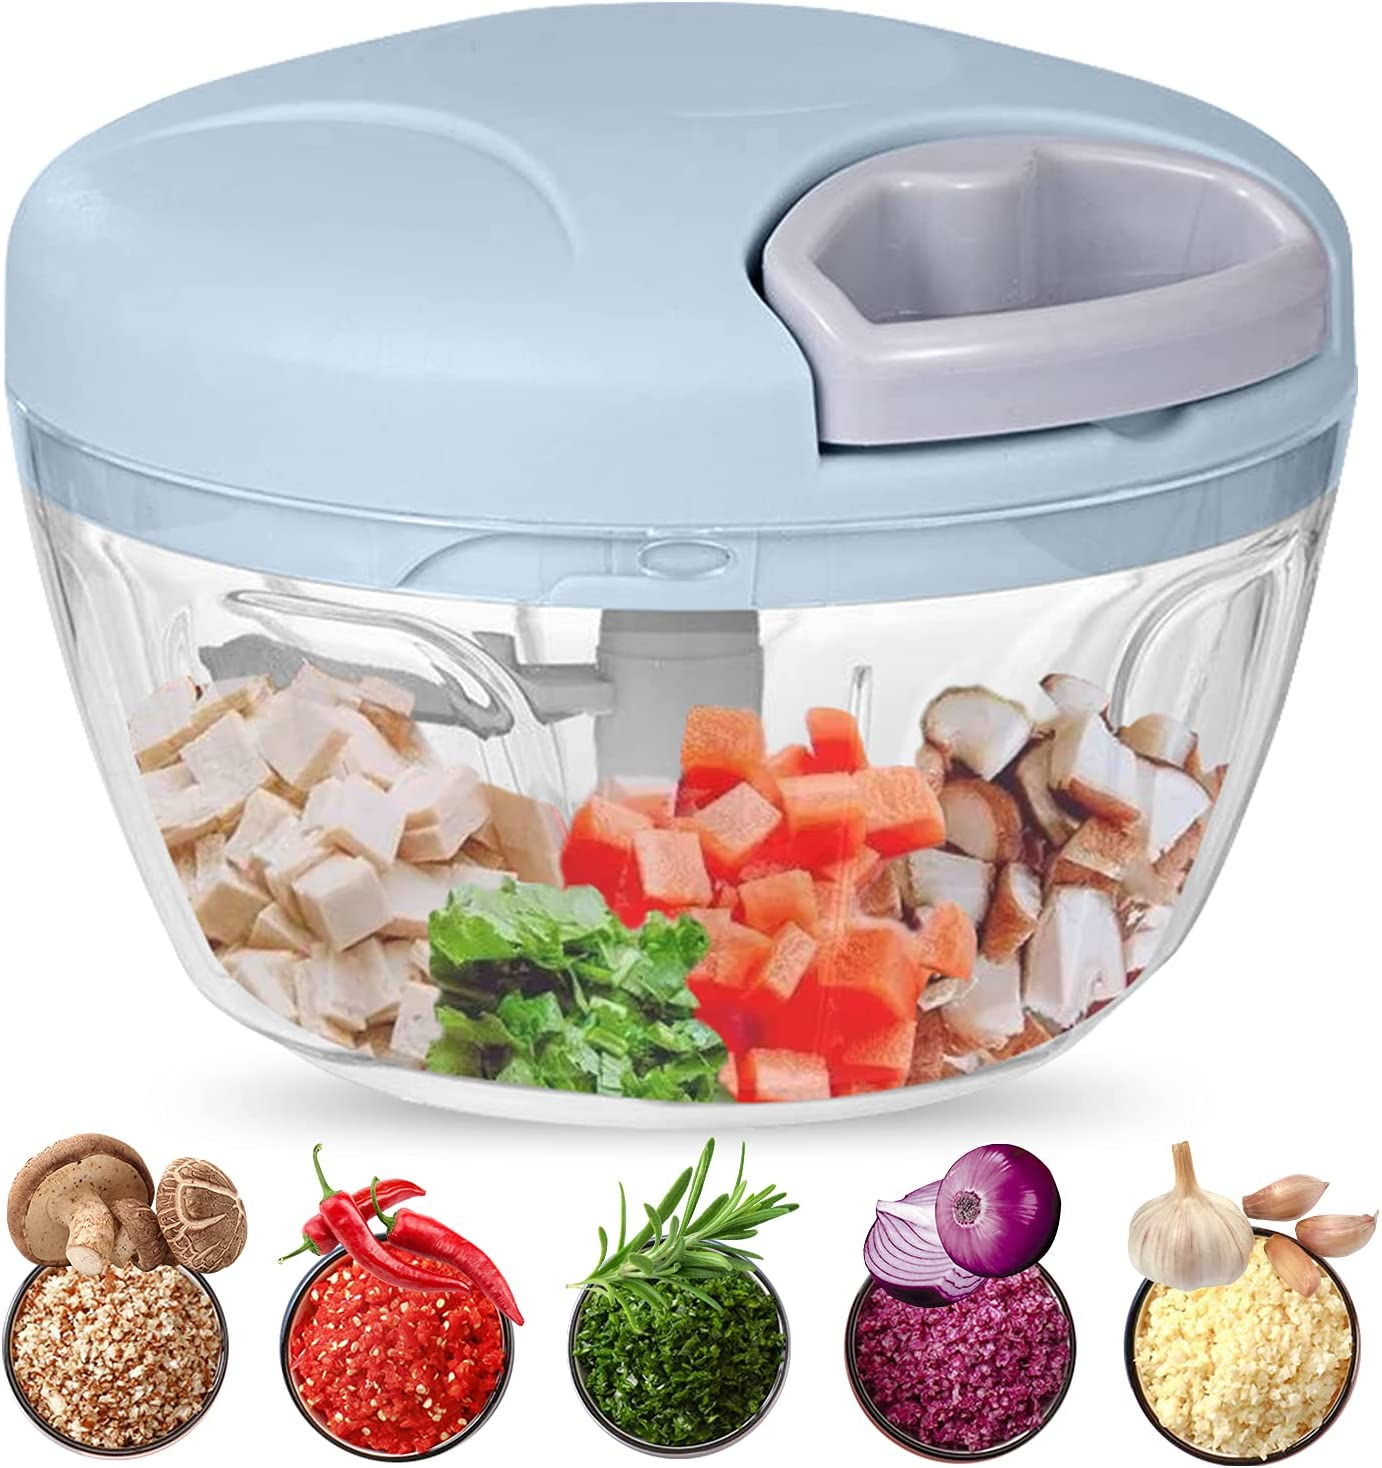 Food Chopper, 500ML Hand-Powered Portable Food Processor, Manual Vegetable Slicer and Dicer, Pull Chop Mechanism Cutter for Garlic, Onion, Vegetable, Salad, Pepper (Blue)